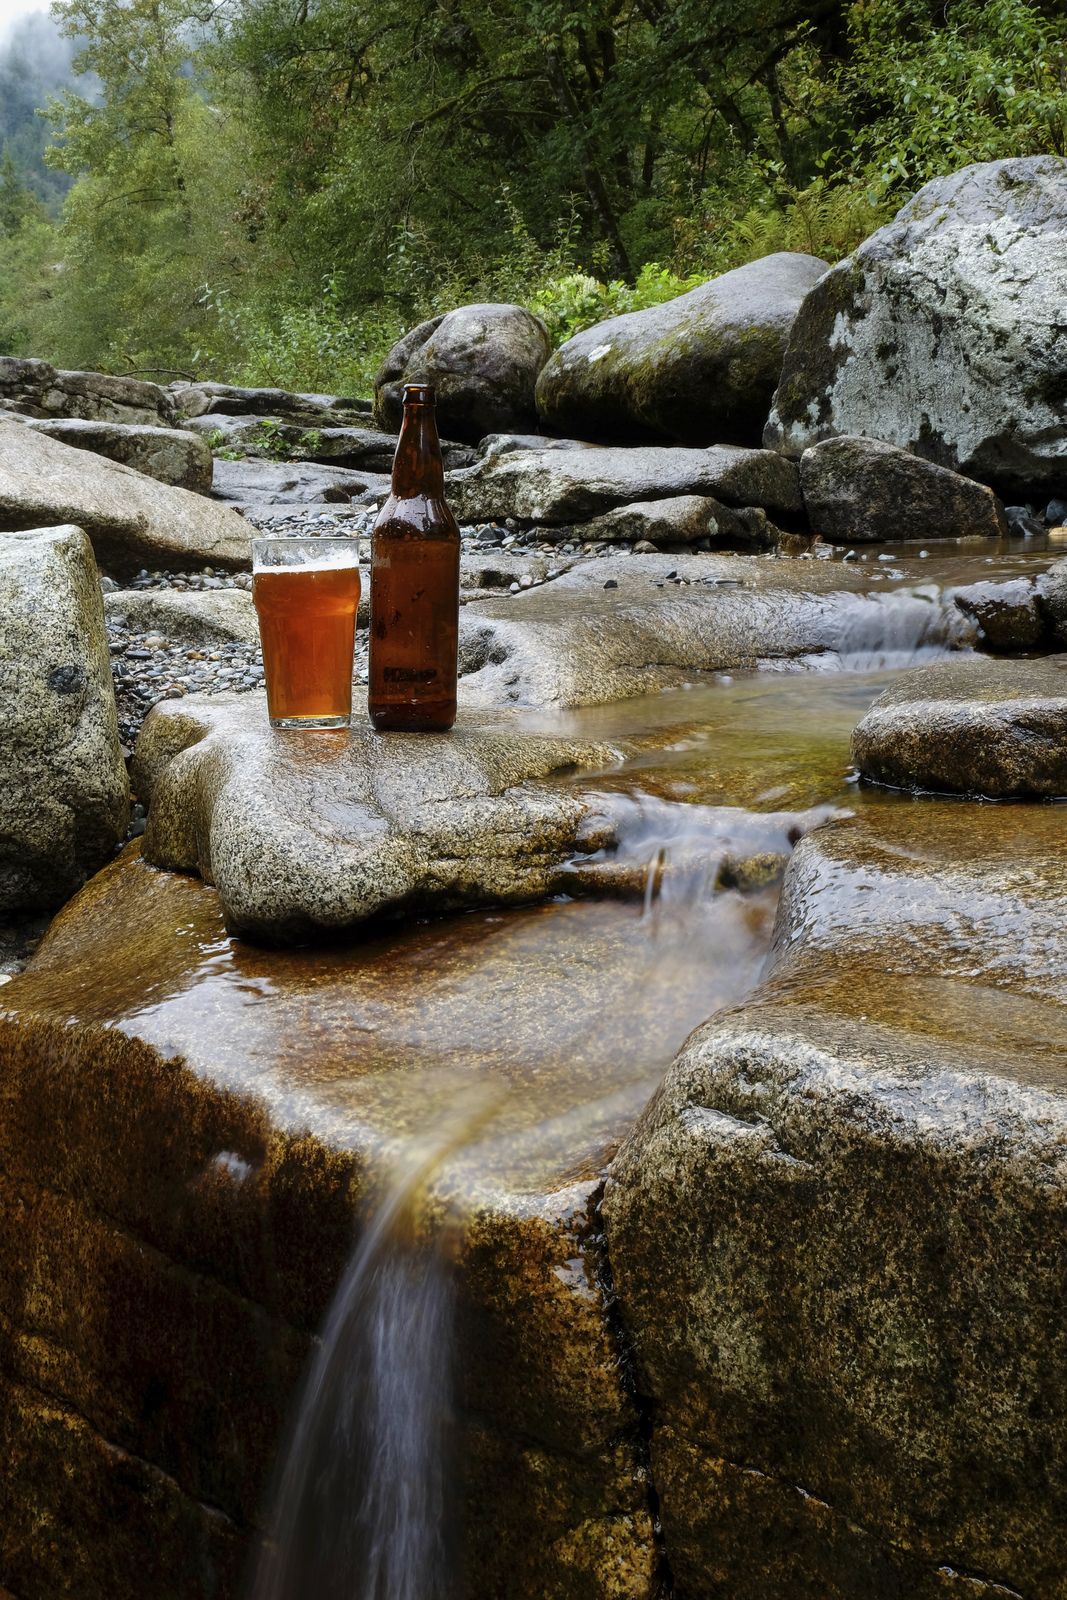 At your next happy hour, raise a glass to local businesses helping protect Washington nature!